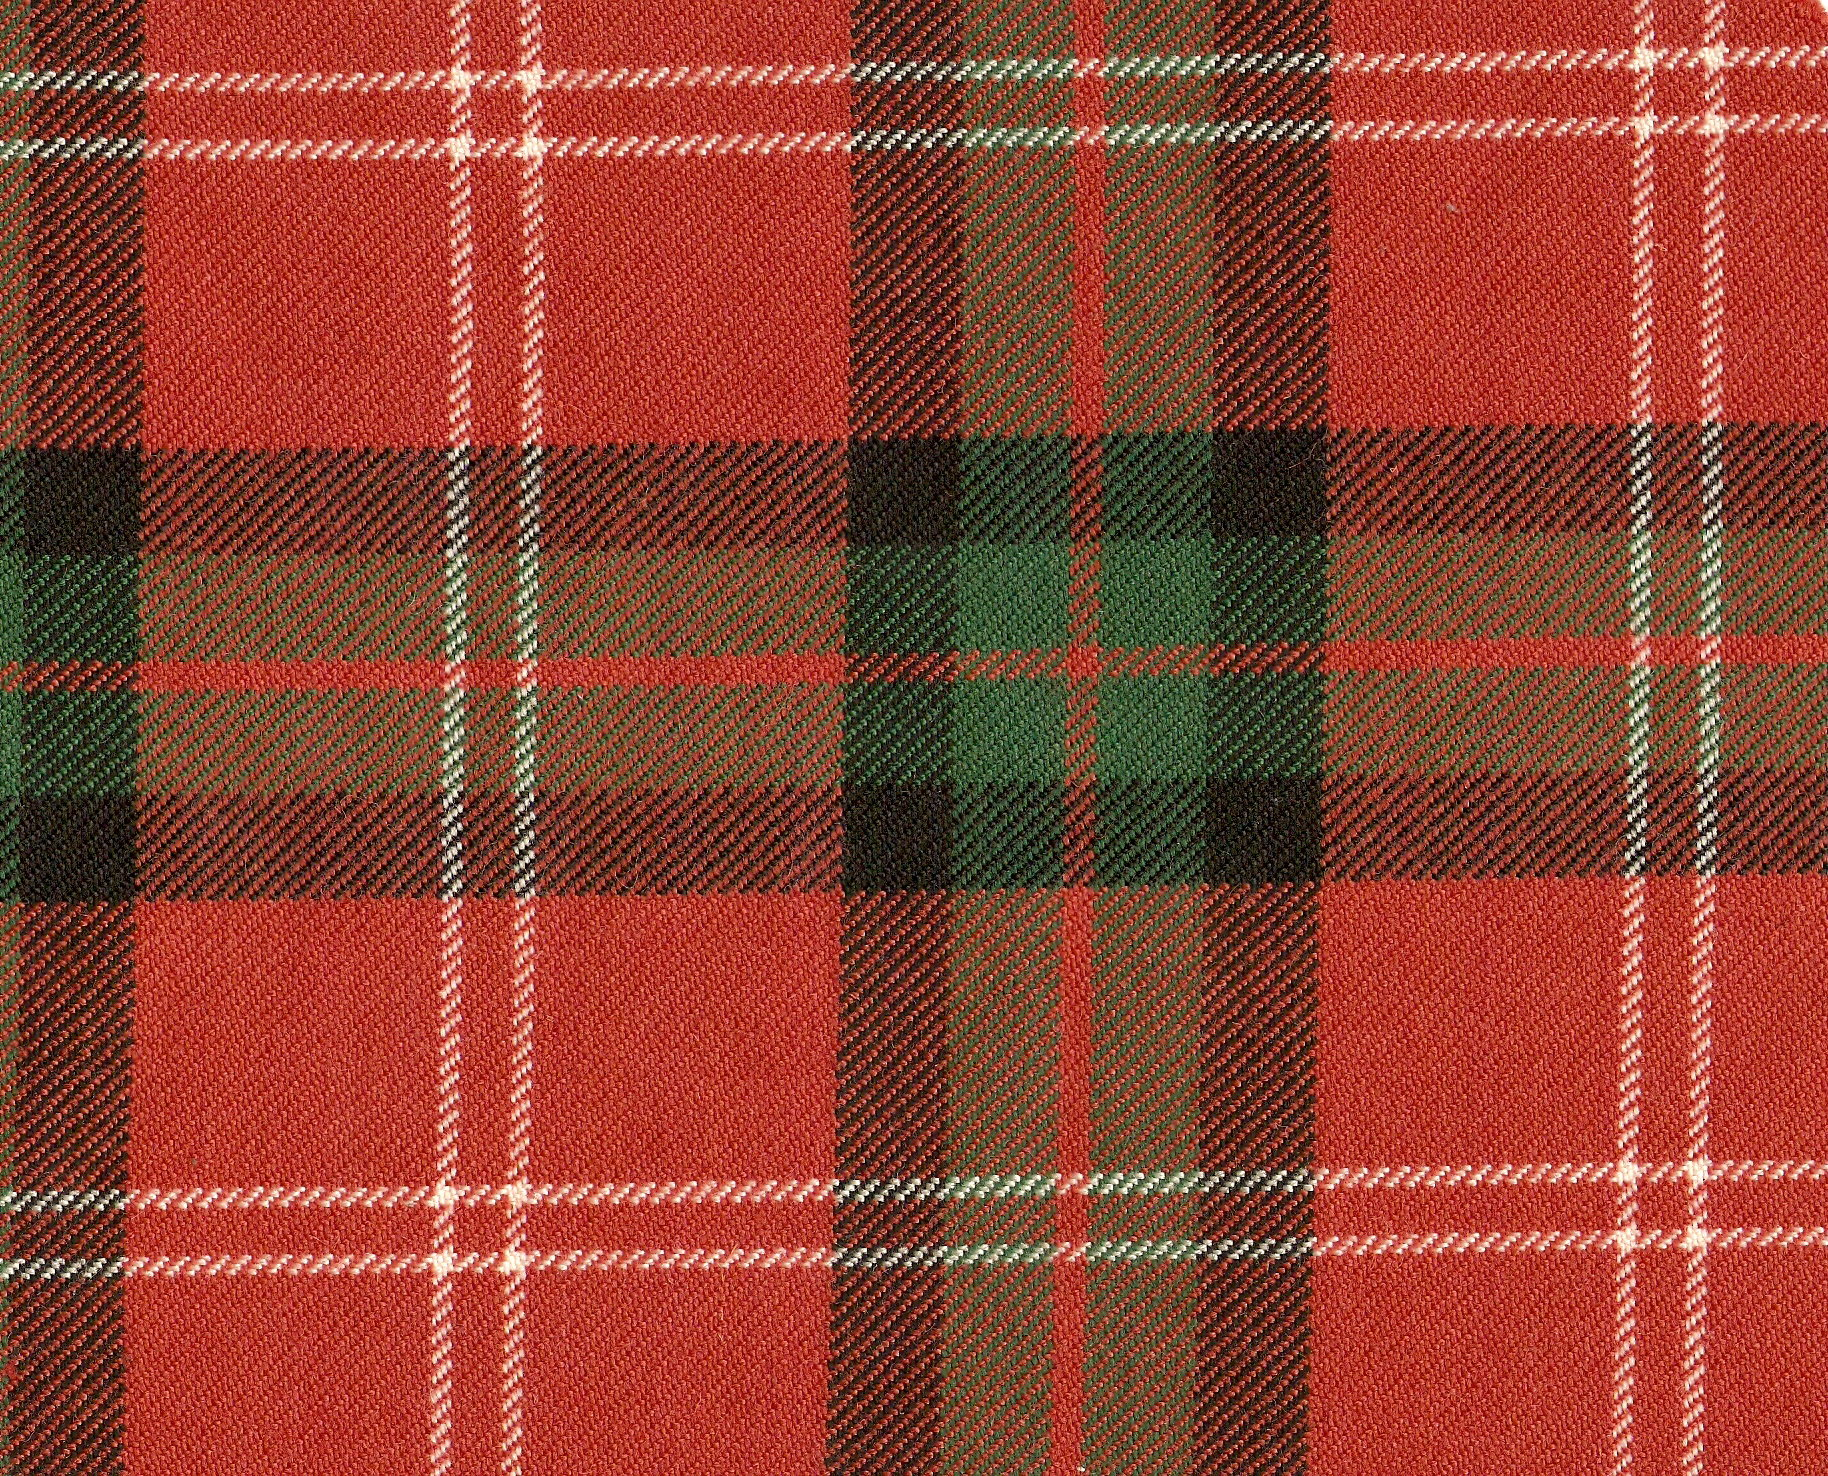 scottish clan plaids images femalecelebrity. Black Bedroom Furniture Sets. Home Design Ideas